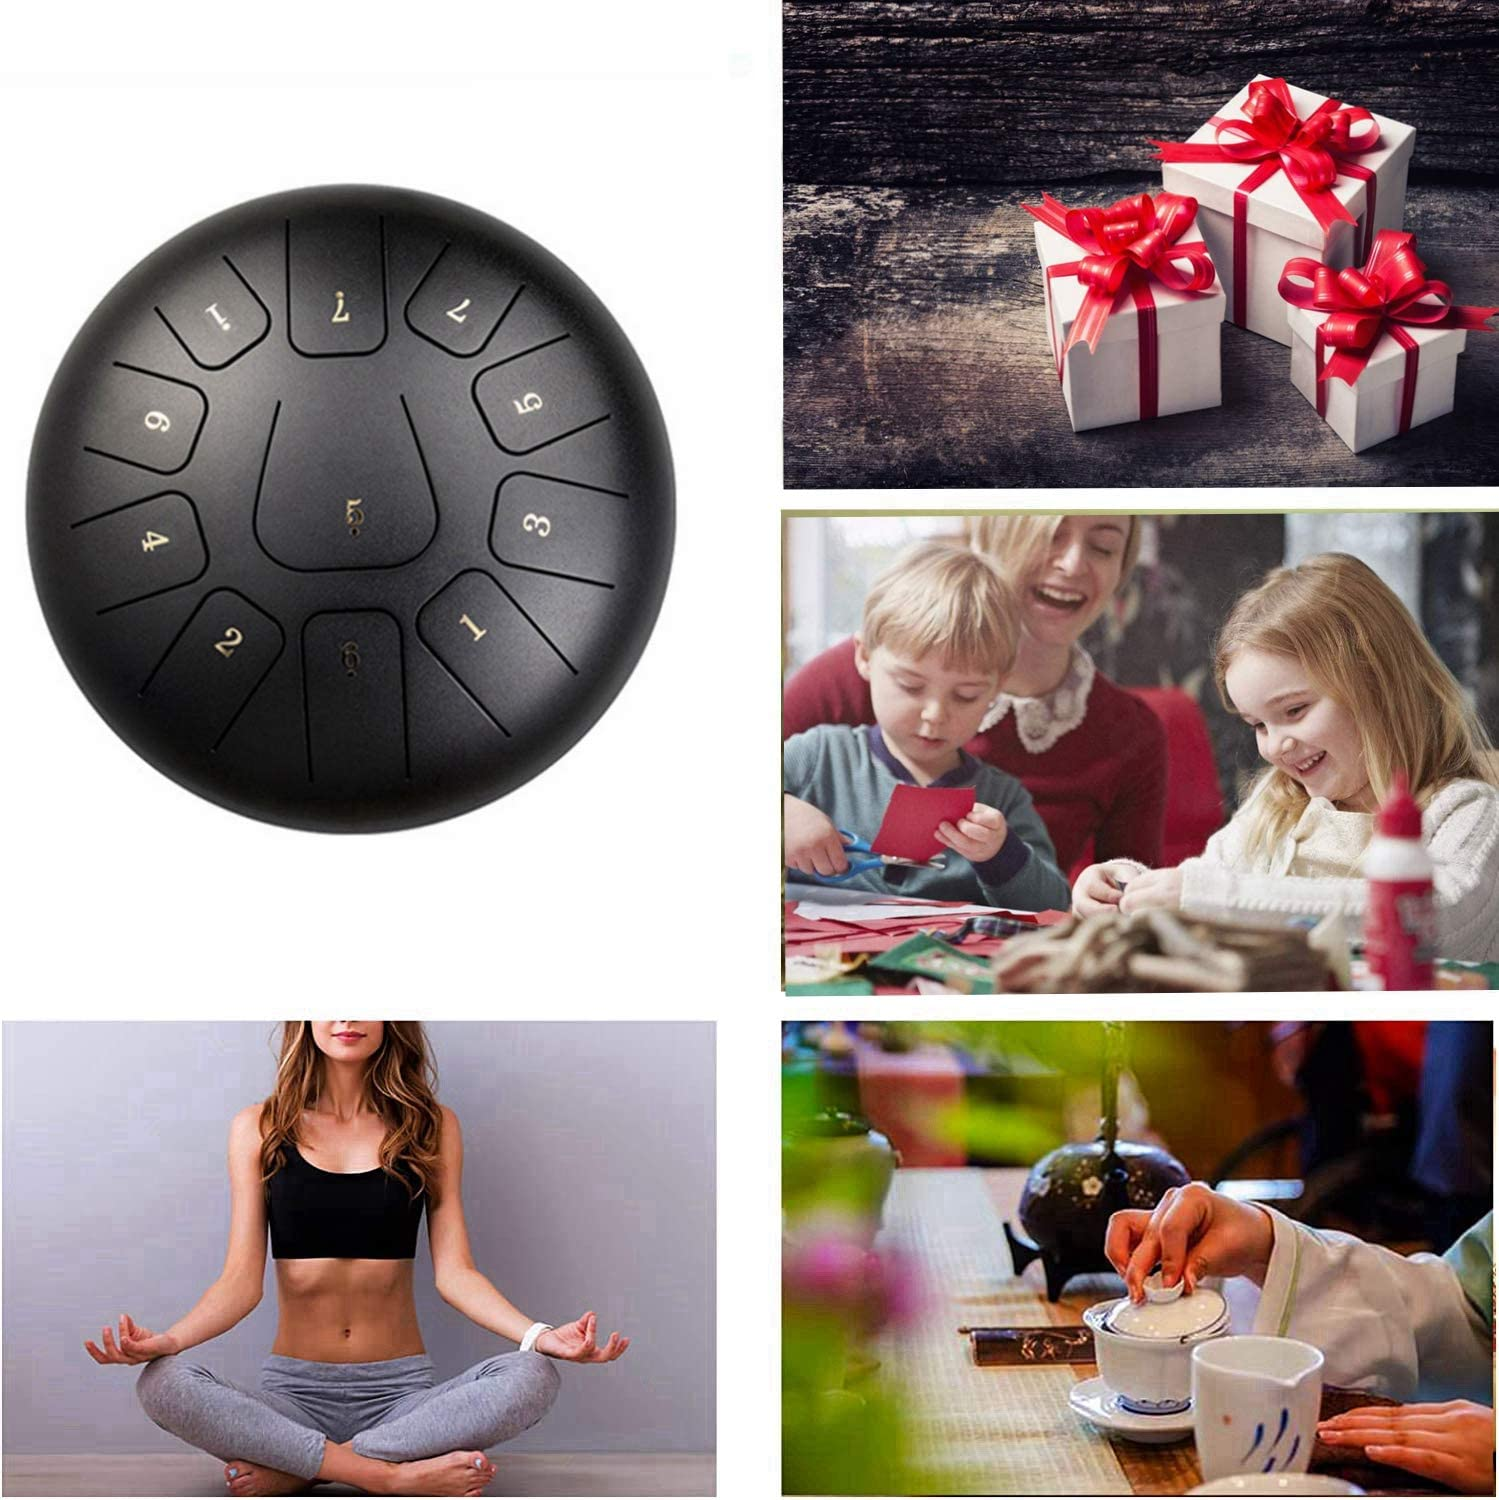 Suitable for Musical Education Concert Mind Healing Yoga 10 inches Steel Tongue Drum 11 tones Fingertips and Padded Travel Bag C Major Chakra Tank Drum with Rubber Mallet